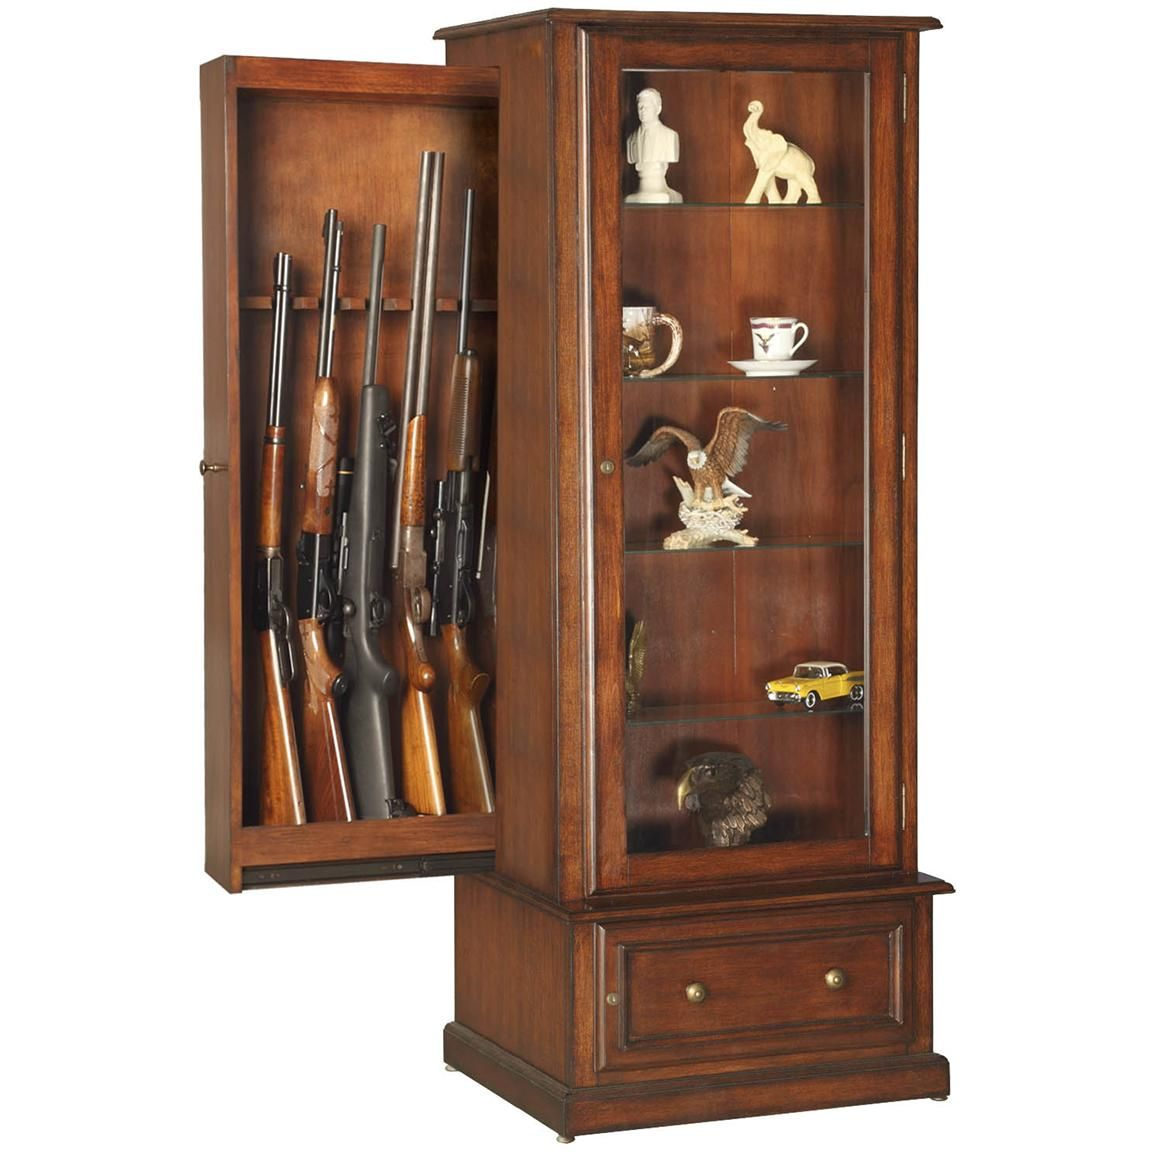 Hidden Gun Curio Cabinet | Concealment furniture | Pinterest ...